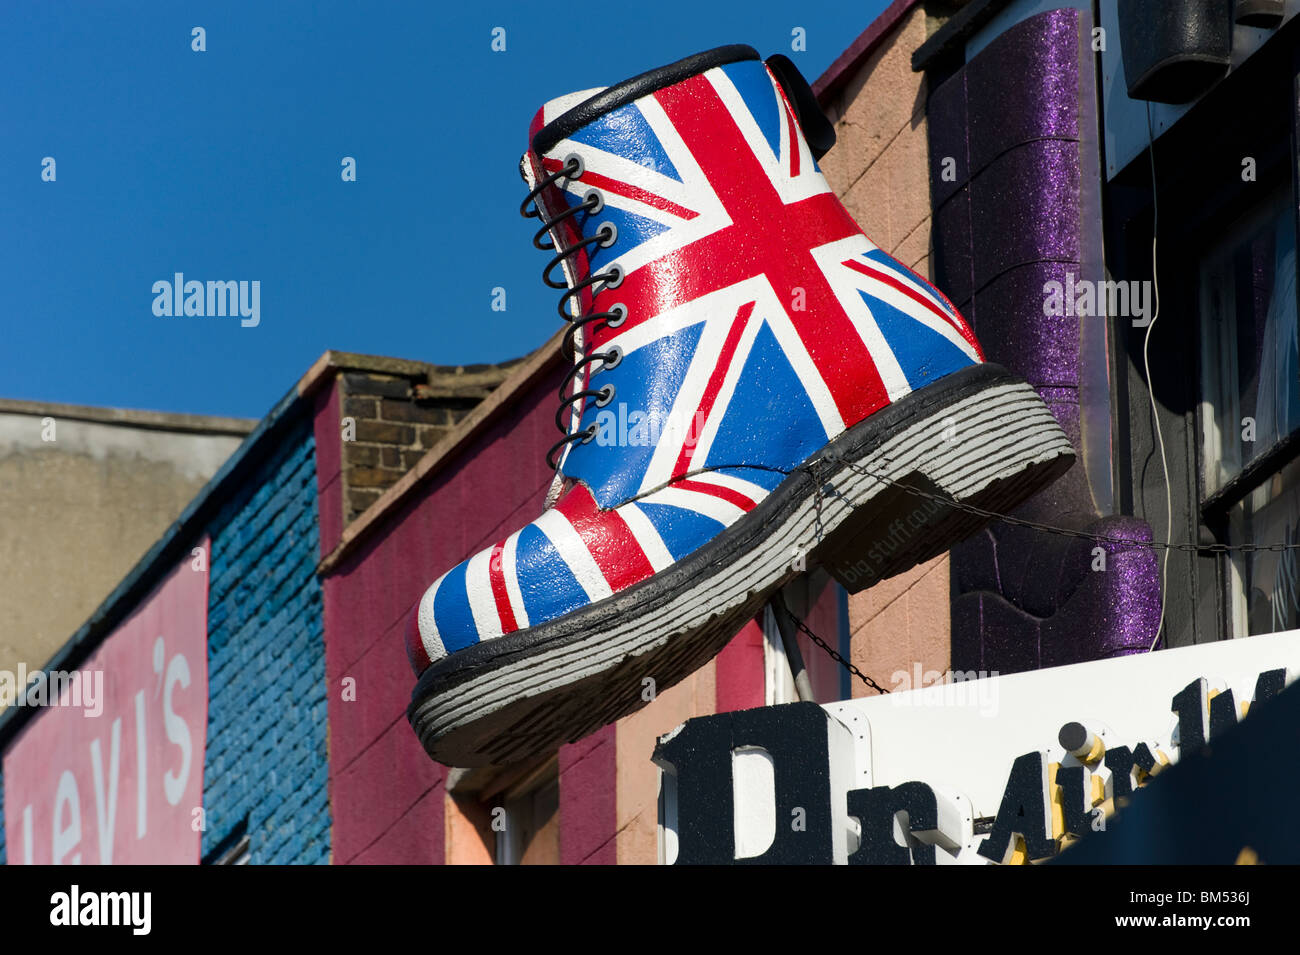 0f967b612d7 Union Jack Dr Martens boot, Camden, London, England, UK Stock Photo ...